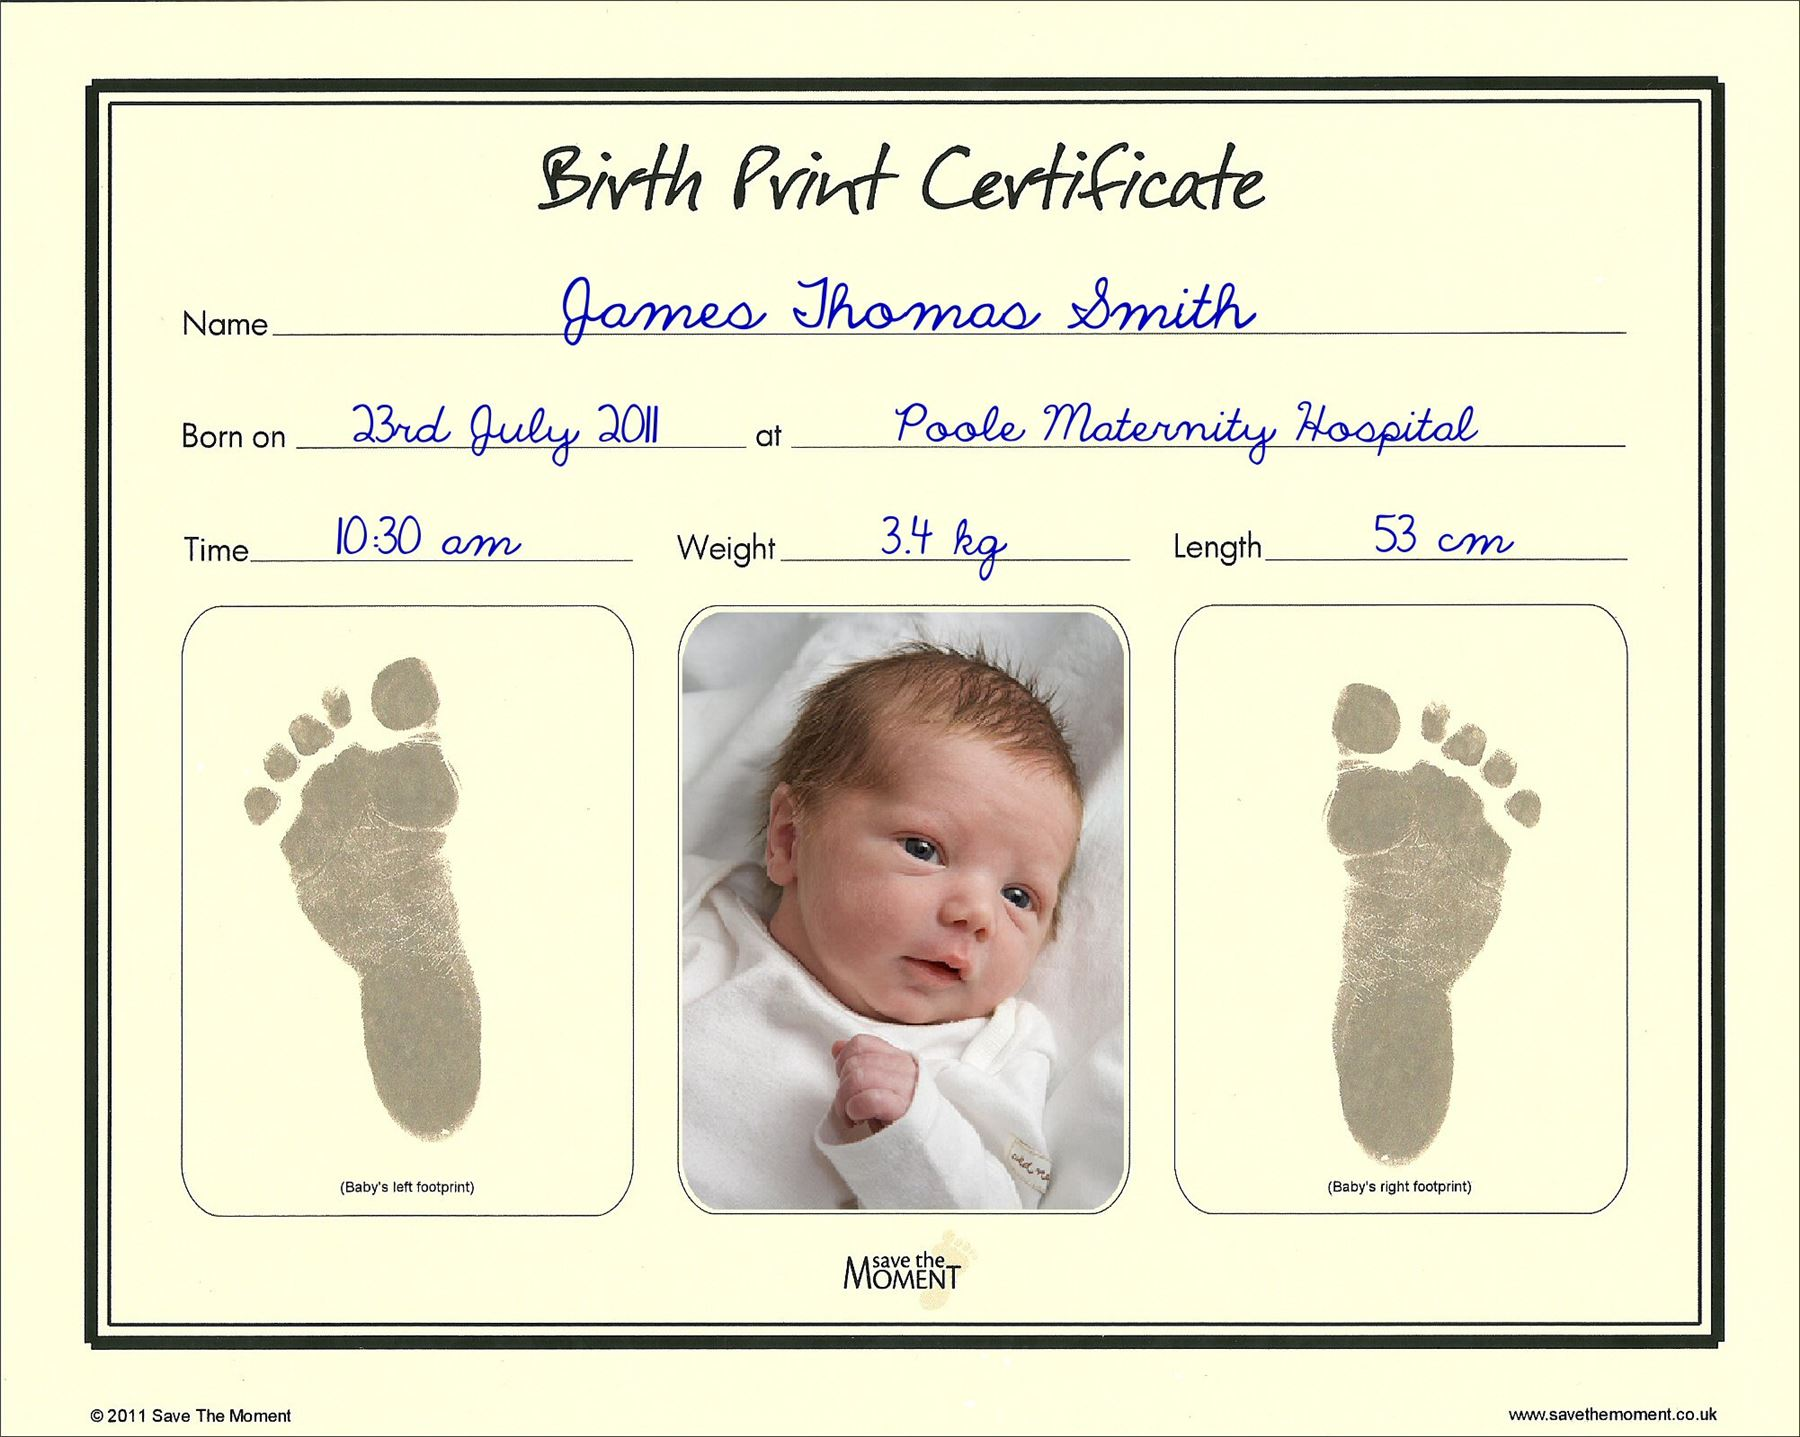 how to get my birth certificate act